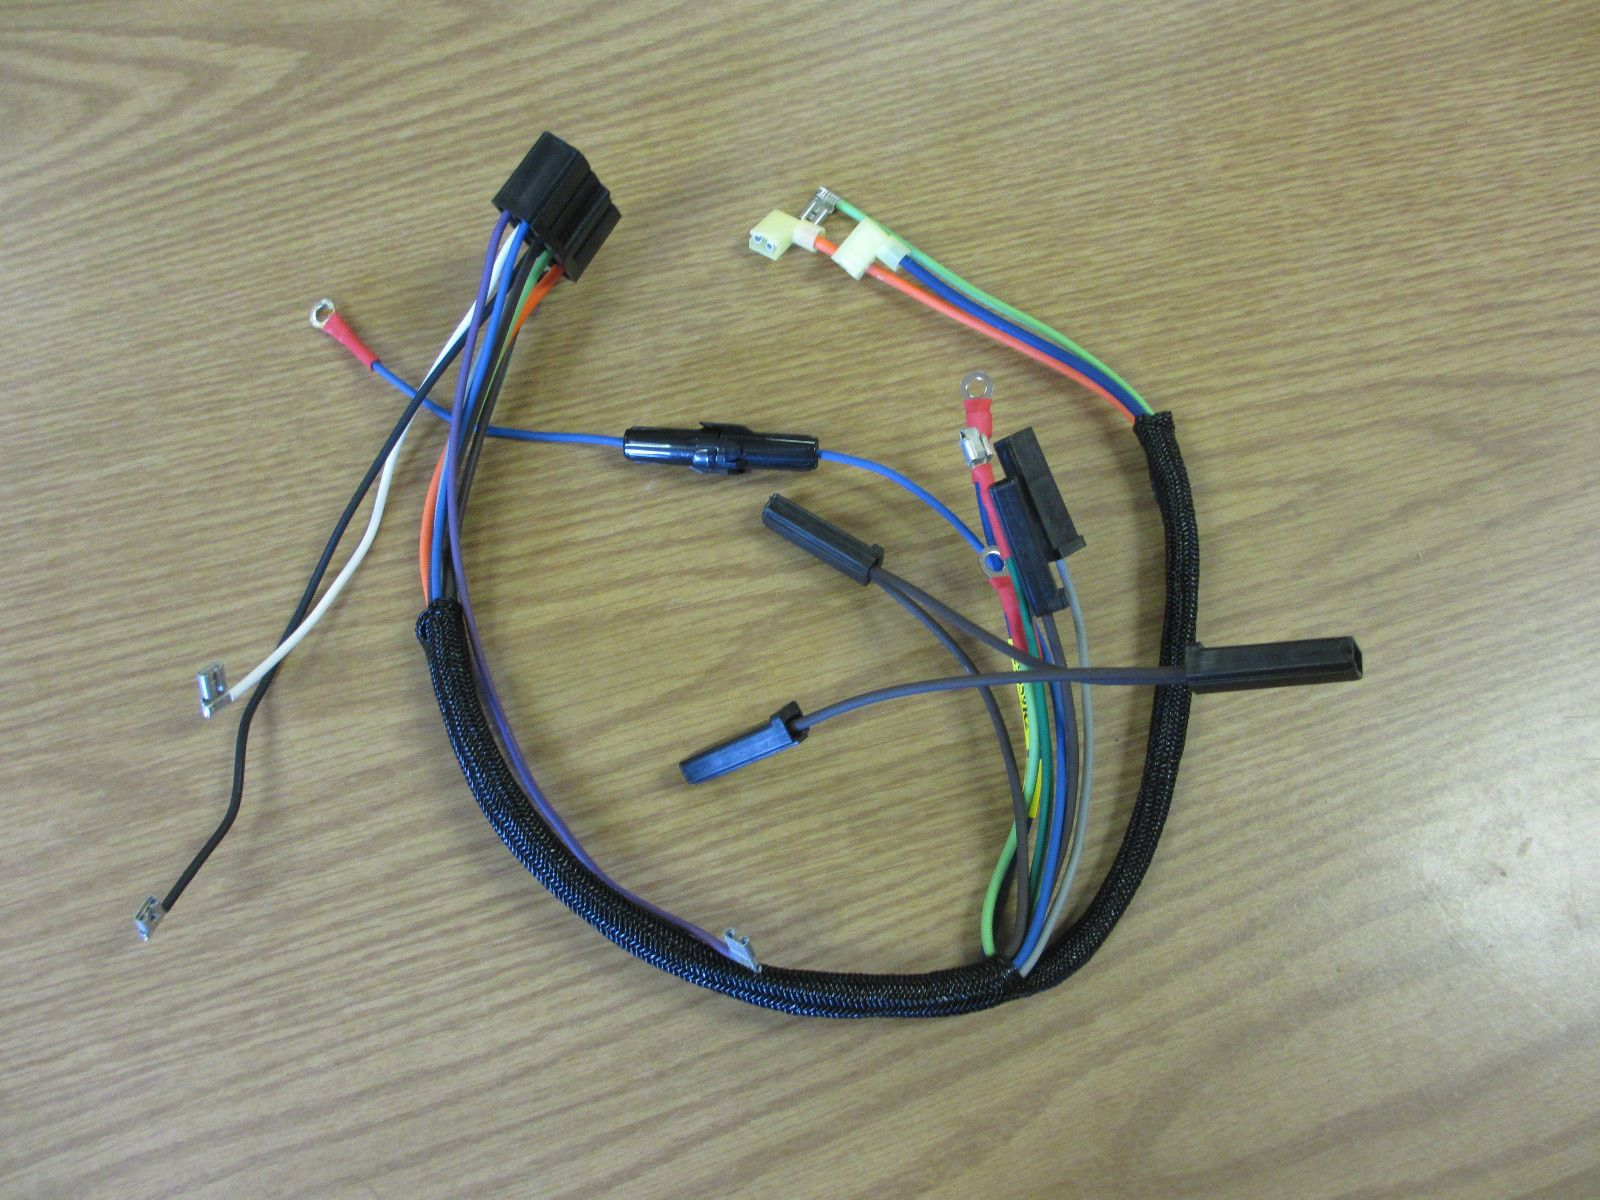 International Wiring Harness Connector Panel on wiring relays, wiring pigtail kits, tachometer connectors, wiring kits for street rods, wiring diagram, chrysler wiring connectors, electrical connectors, wiring block connectors, battery connectors, wiring led strip, relay connectors, power supply connectors, wiring cap connectors, wiring turn signal kits, cable connectors, pump connectors, fuel line connectors, wiring terminals, motor connectors, wiring bullet connectors,